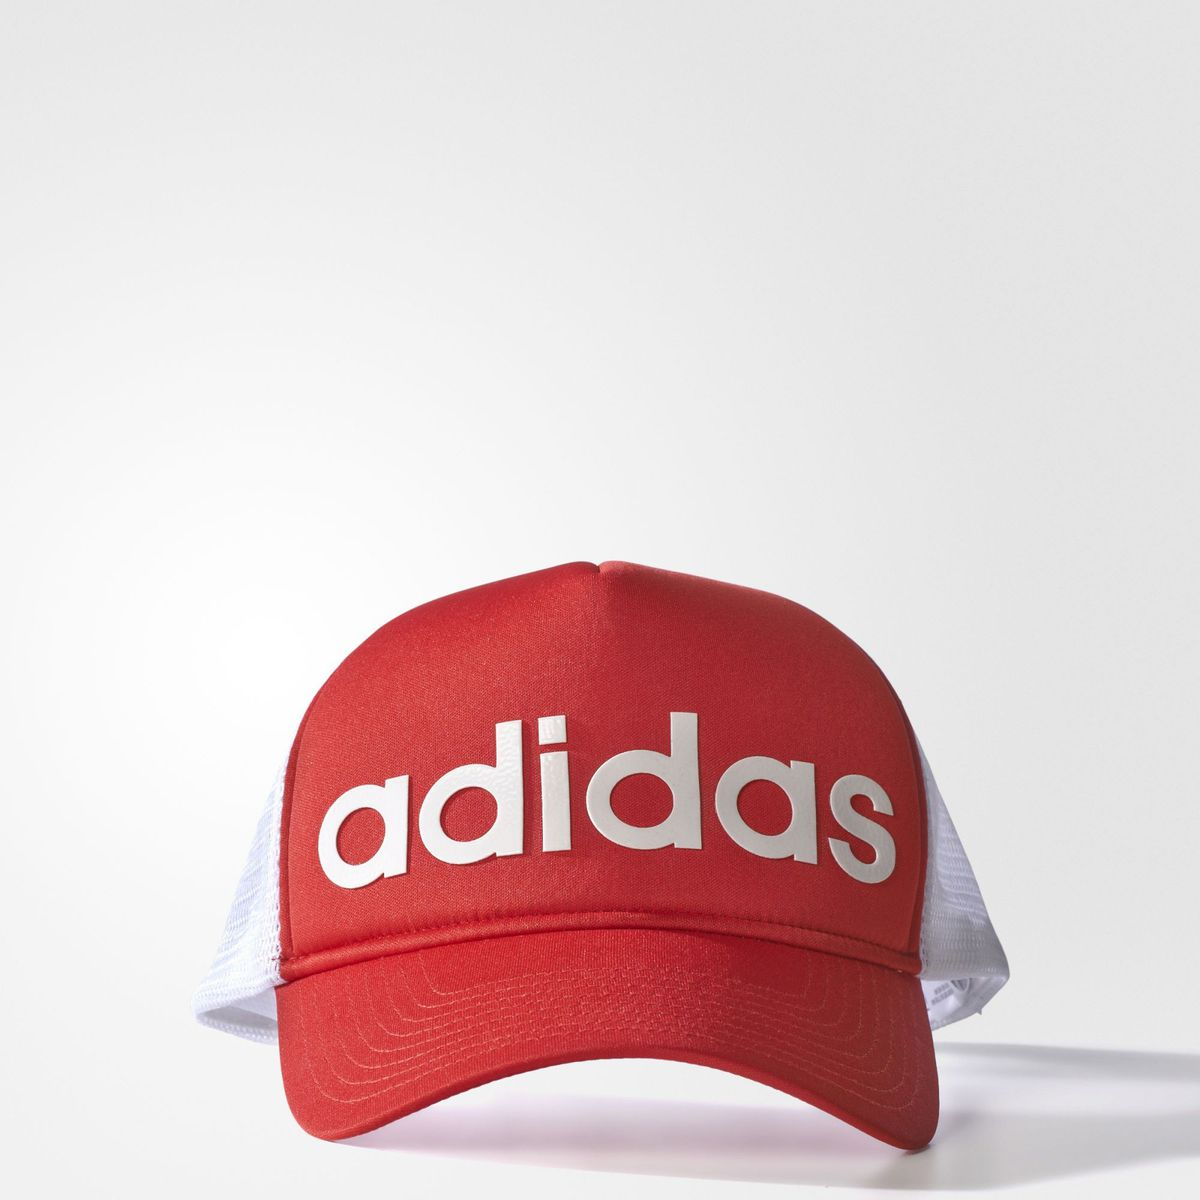 ffee06e79dcf1 Adidas Trucker Cap For Sale - Parchment N Lead